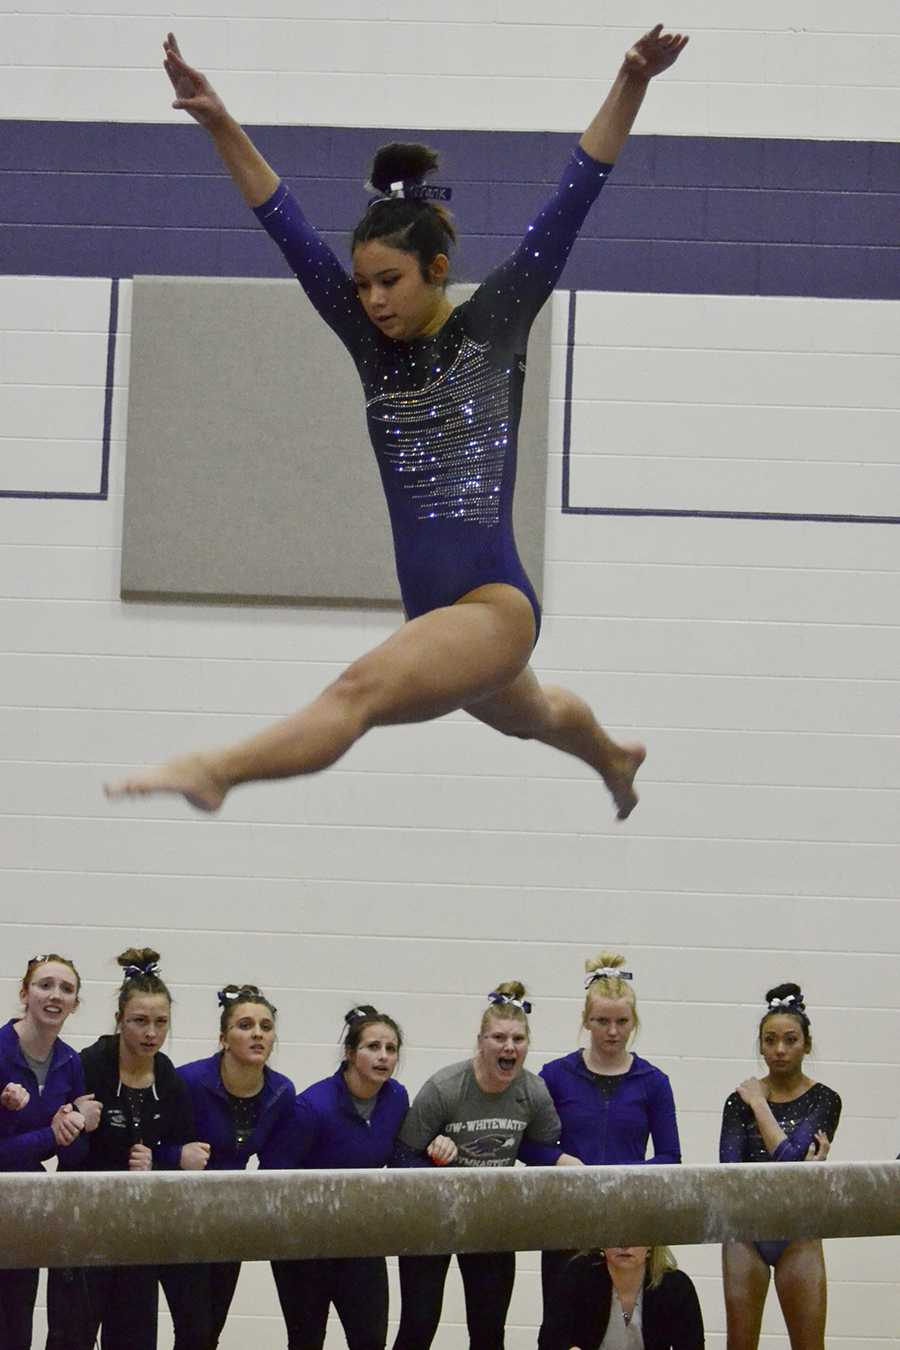 Sophomore Franchesca Hutton leaps in the air during her  balance beam routine as her teammates cheer her on in the March 11 victory against Hamline University. Photo by Sierra High